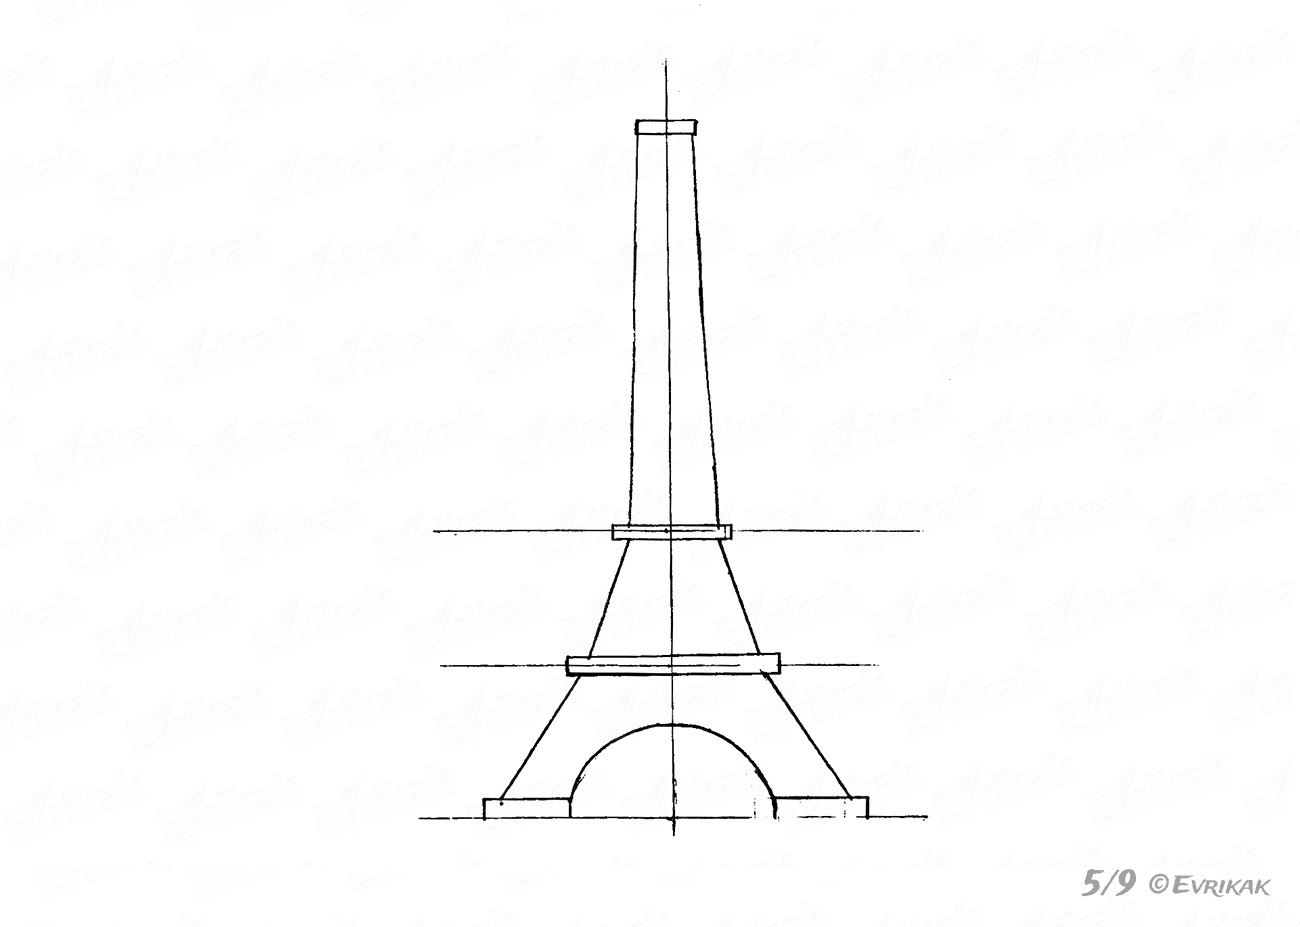 The shape of the tower